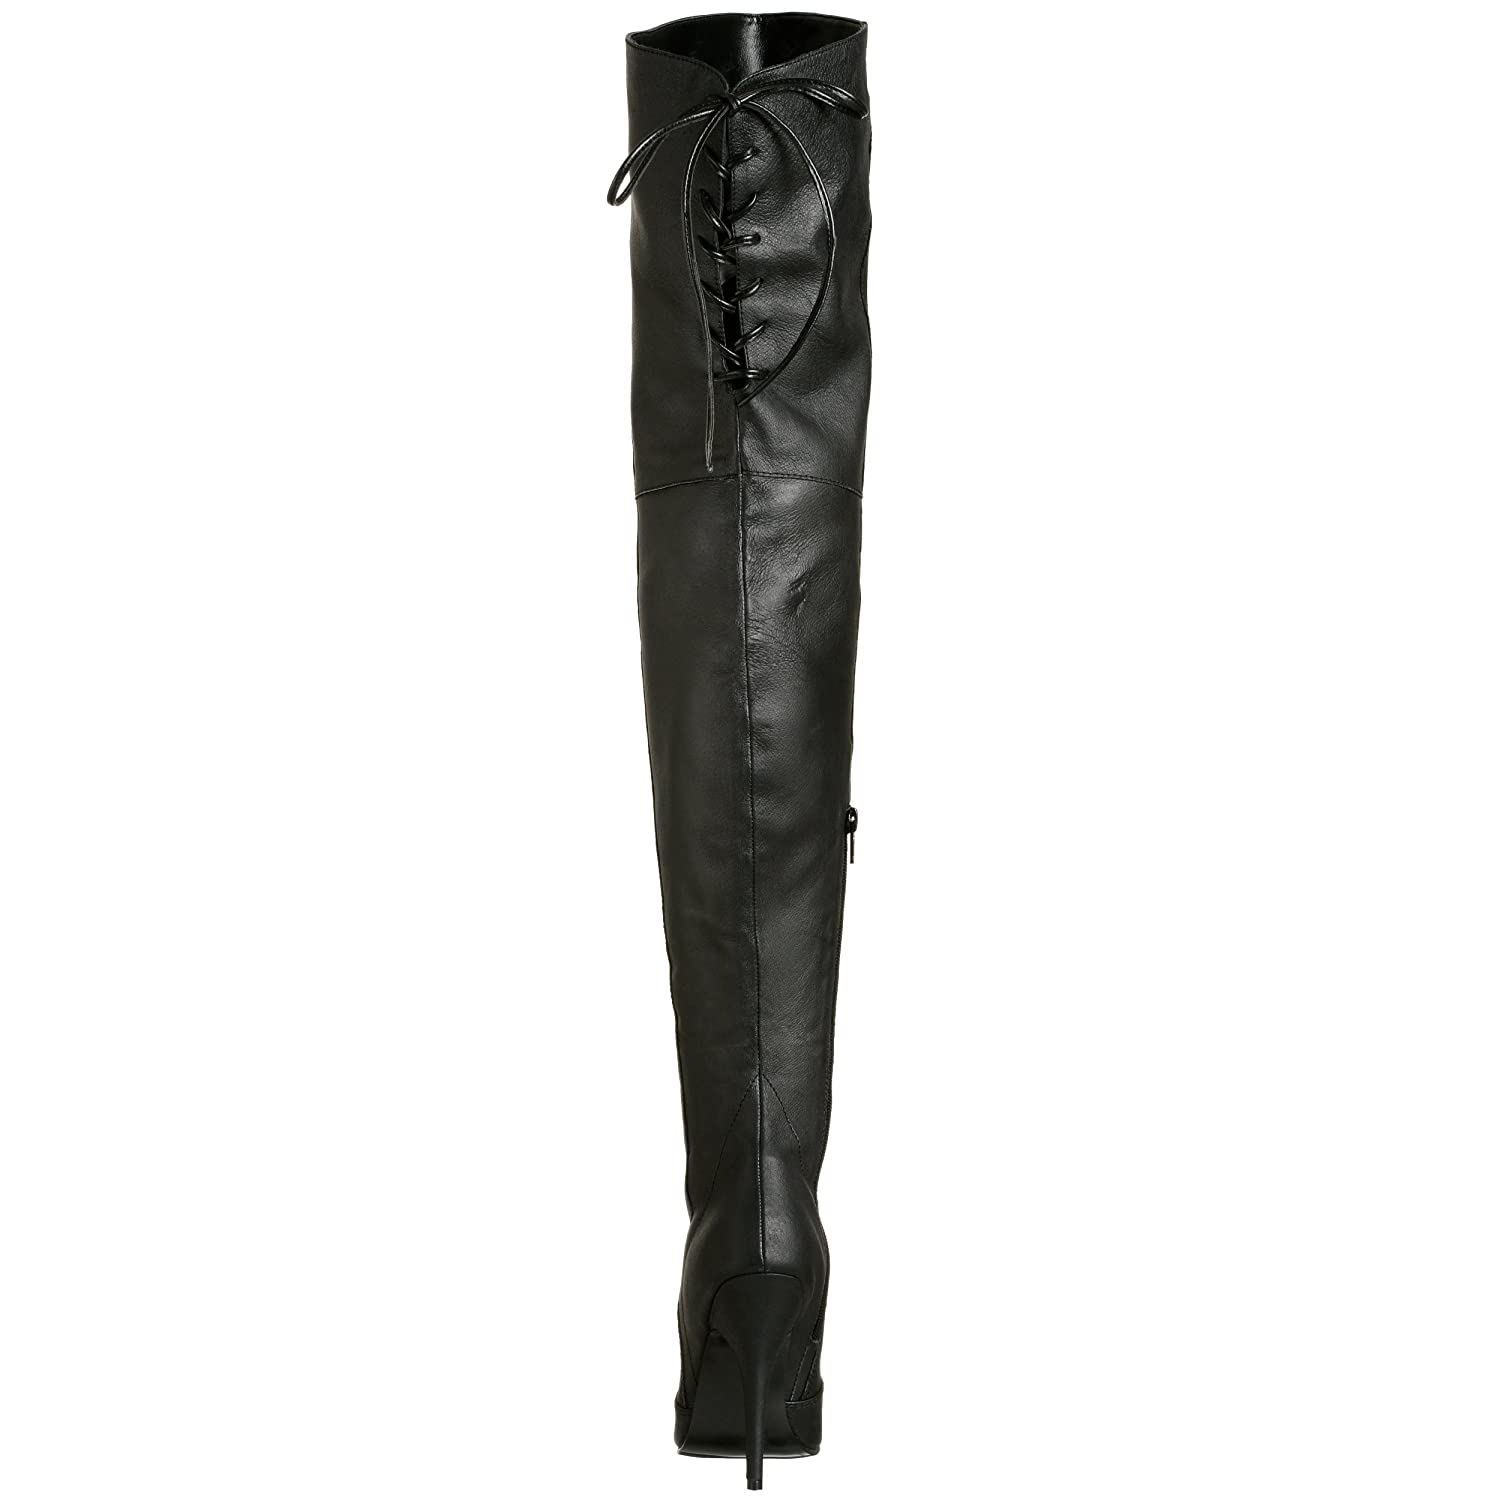 Pleaser Women's Legend-8899 Boot B00125V132 13 B(M) US|Black Leather